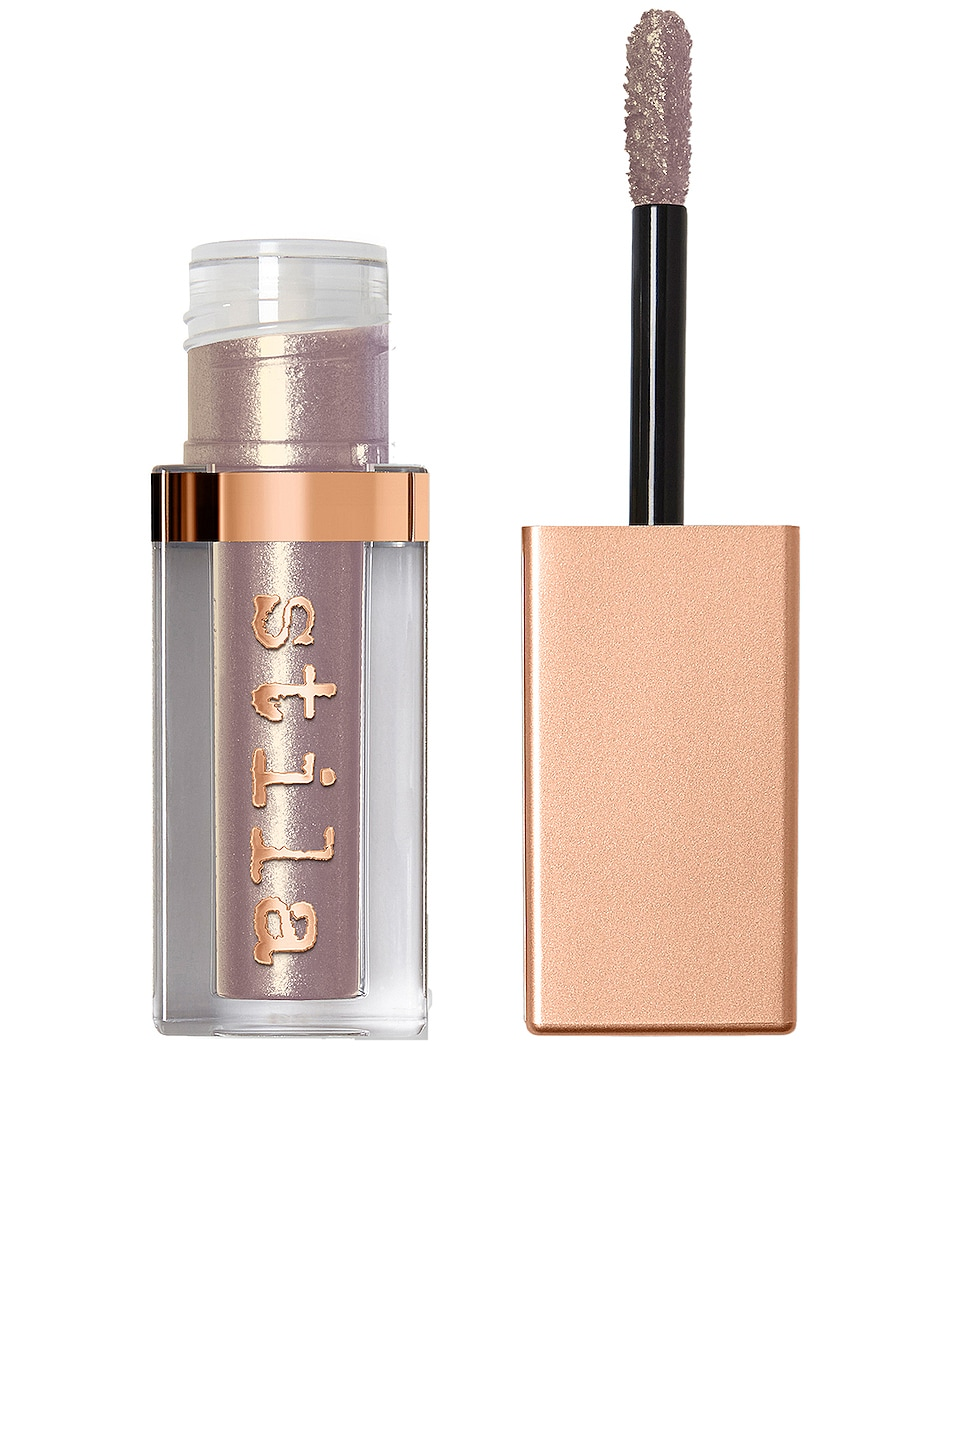 Stila Shimmer & Glow Liquid Eye Shadow in Cloud